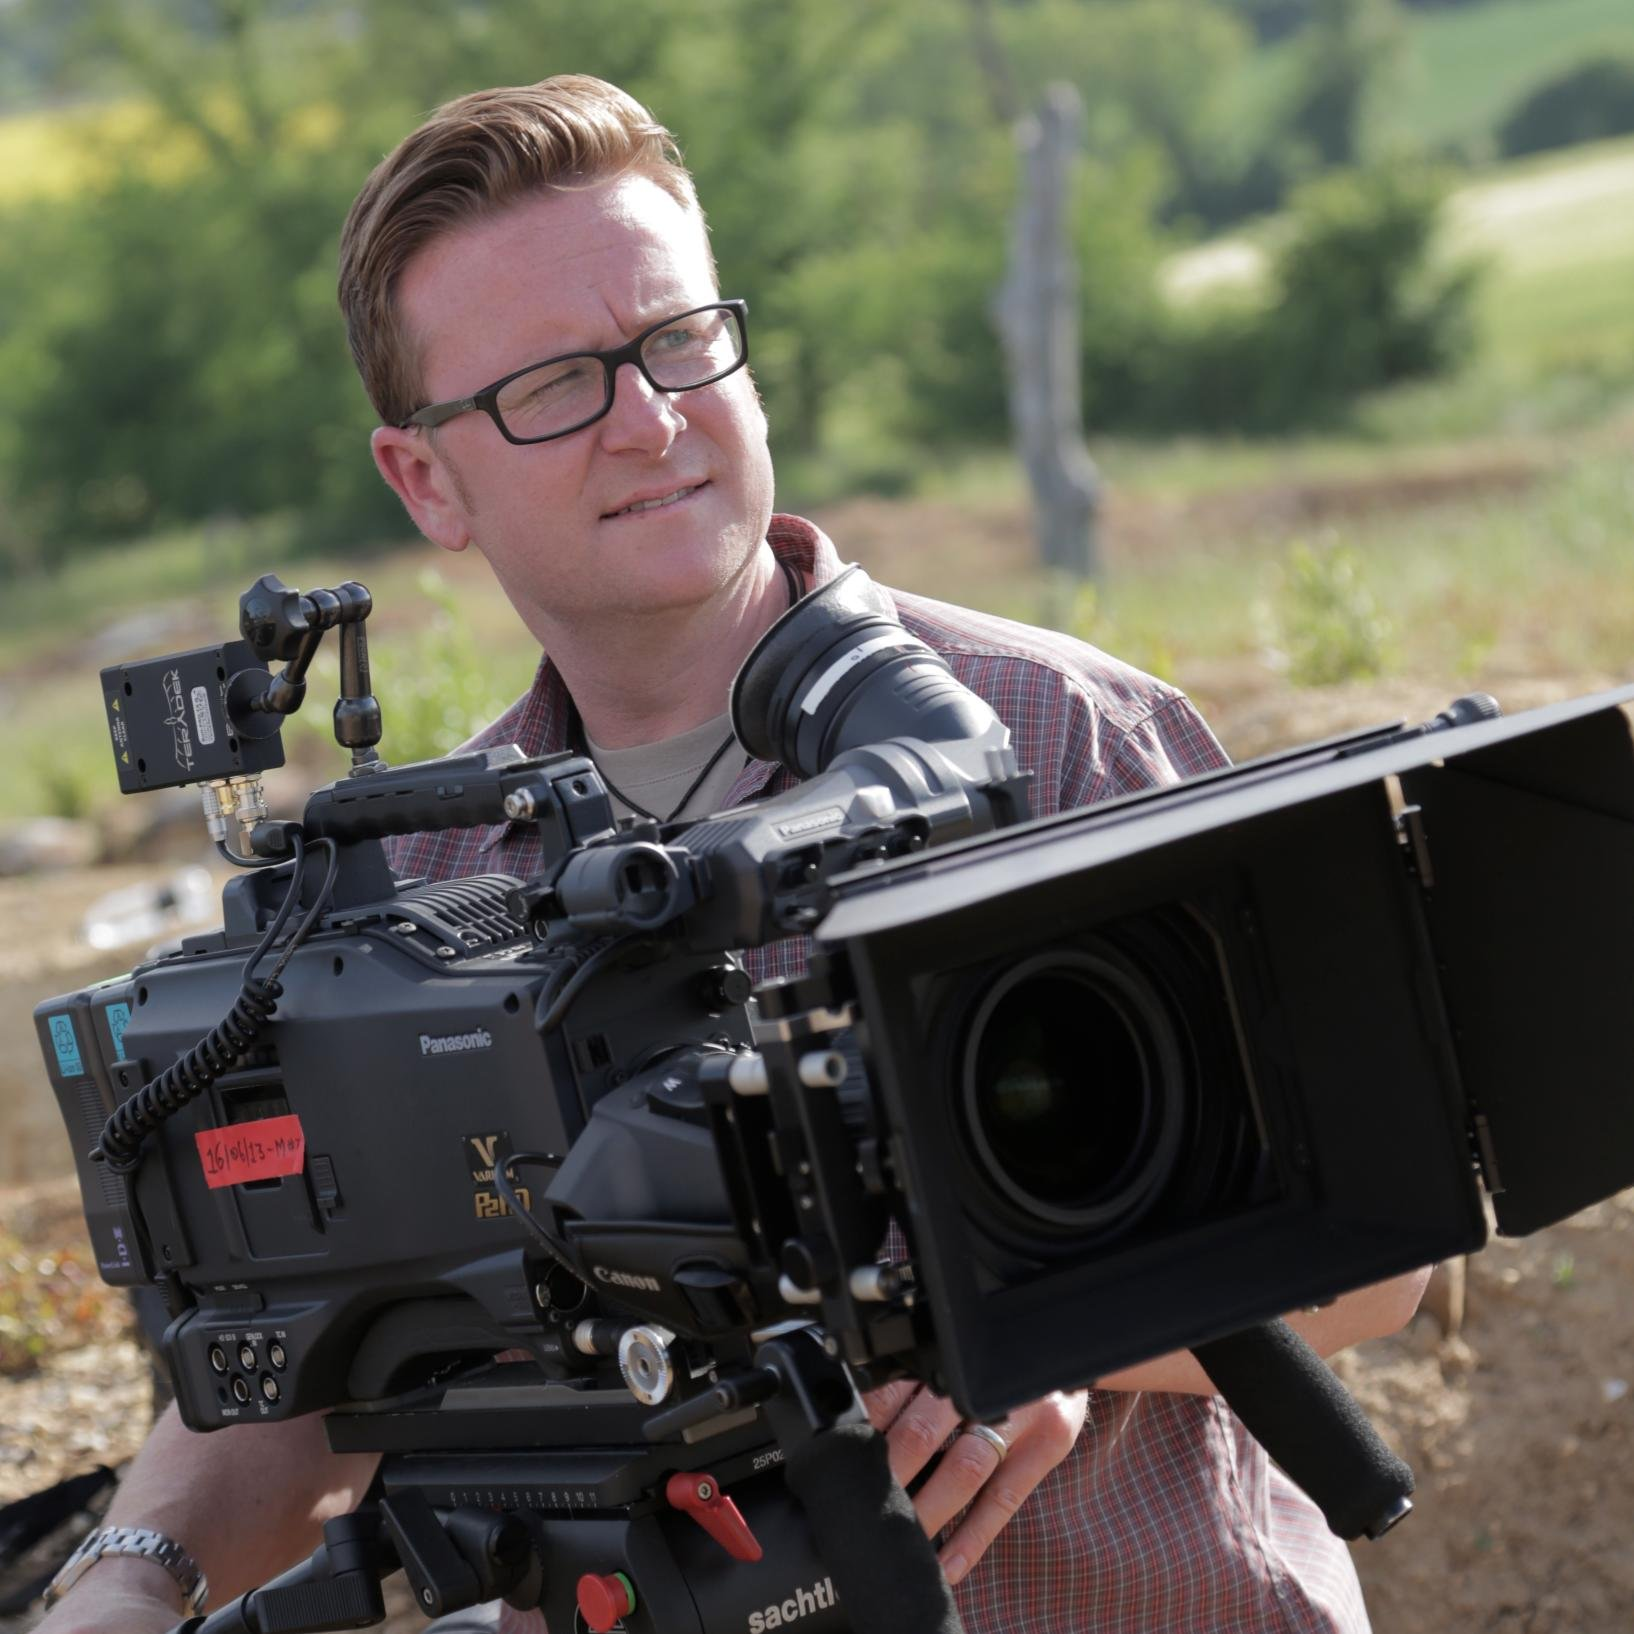 Camera Track - Camera Prosup Tango Roller in Action by cameraman Jamie Hobbis